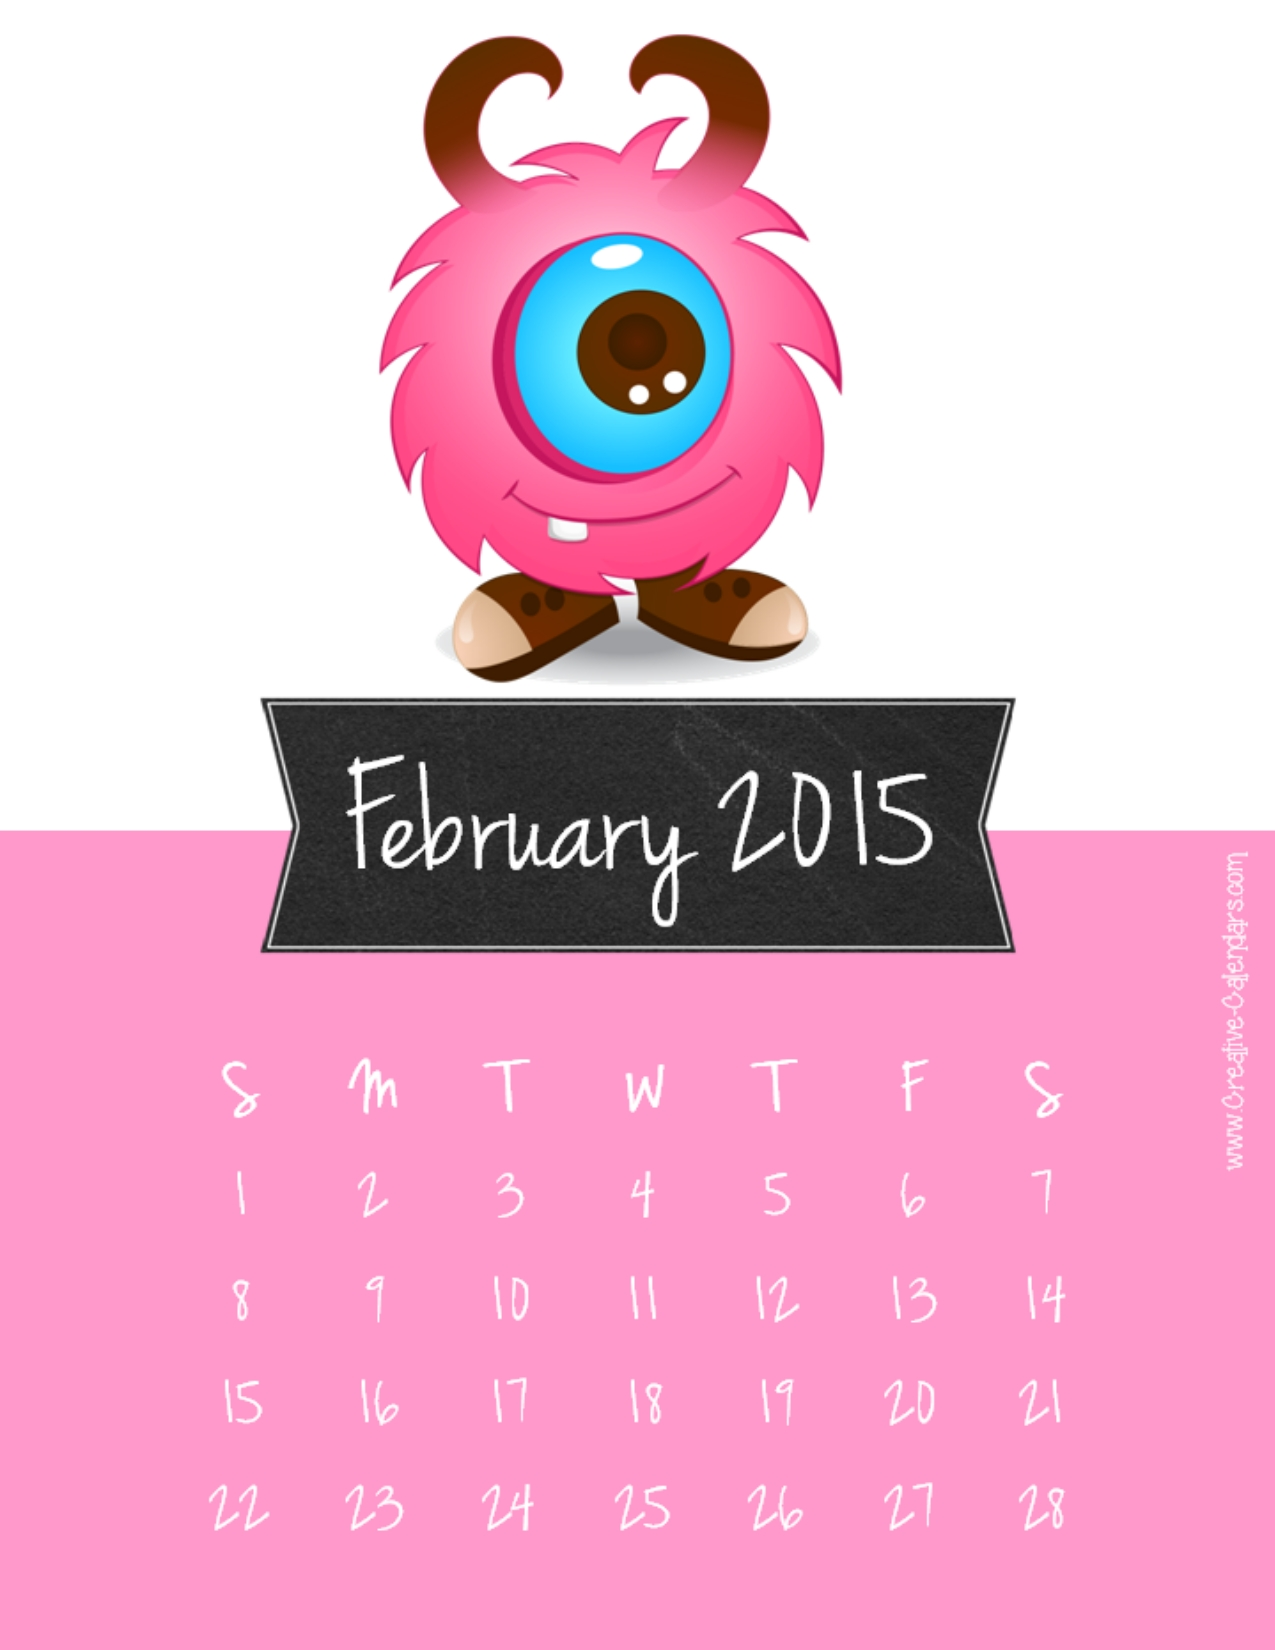 February 2015 calendar clipart clip library download February Calendar Clipart - Clipart Kid clip library download